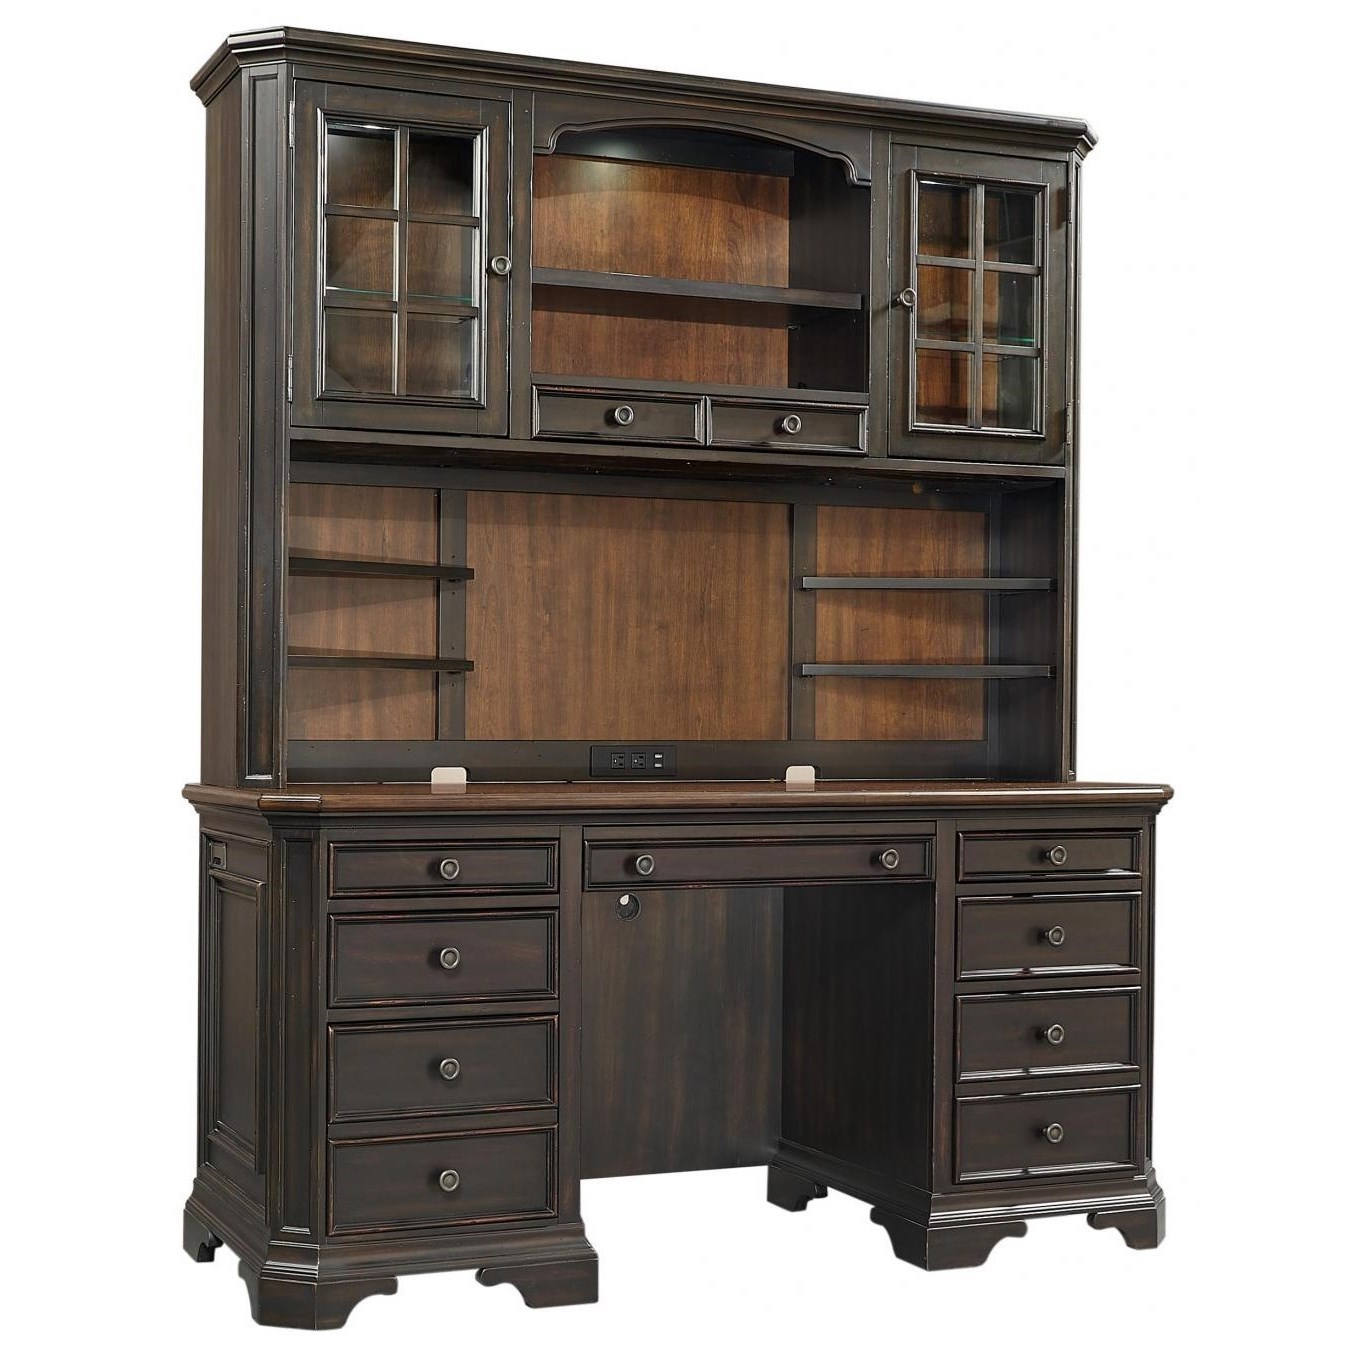 Hampton Credenza Desk and Hutch by Aspenhome at Walker's Furniture